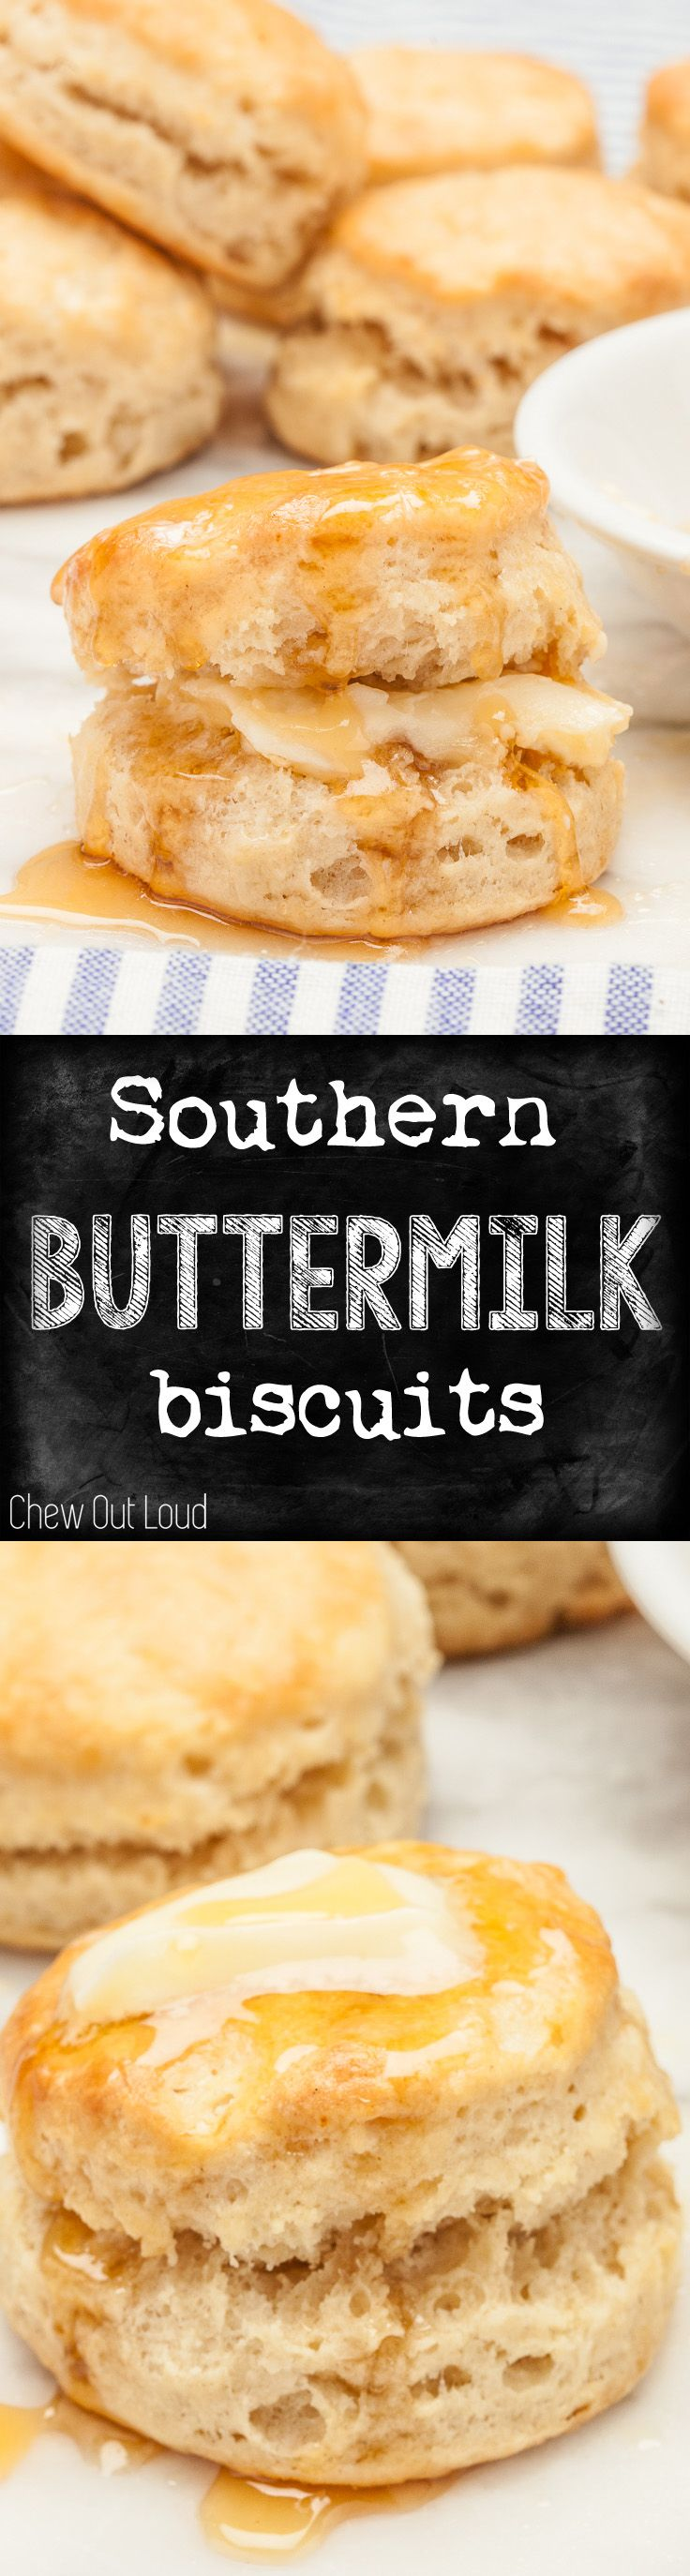 These are THE Best Buttermilk Biscuits! Golden, fluffy, tender, moist, soft, and melt-in-your-mouth! #biscuits #recipe